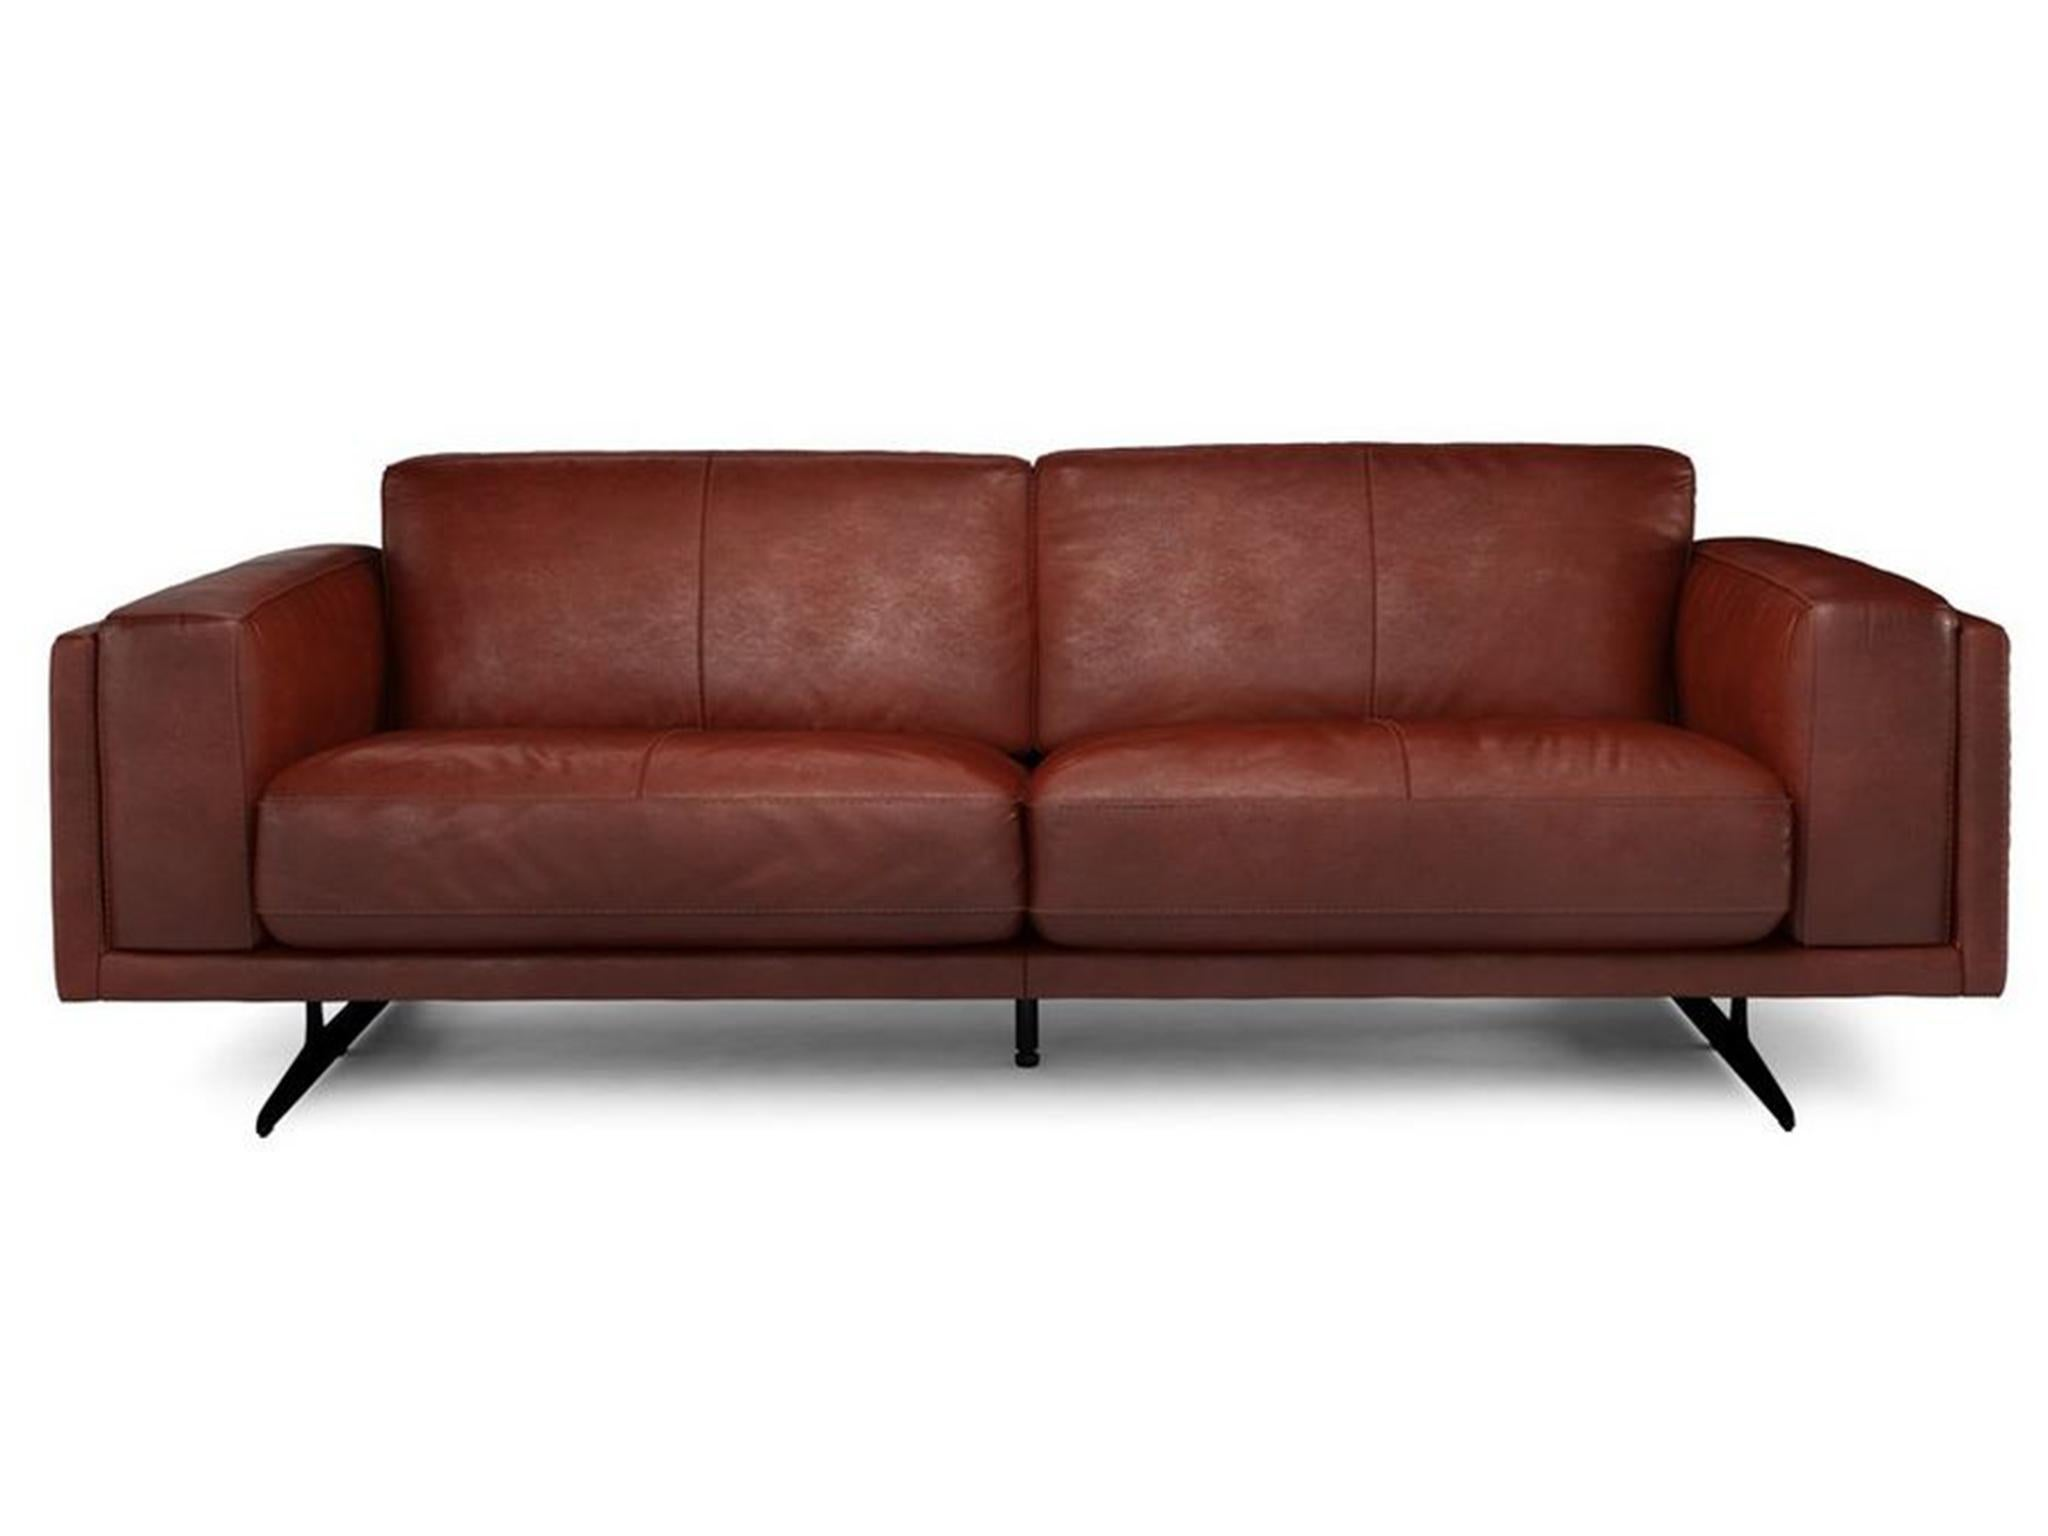 Incredible 8 Best 3 Seater Sofas The Independent Download Free Architecture Designs Scobabritishbridgeorg